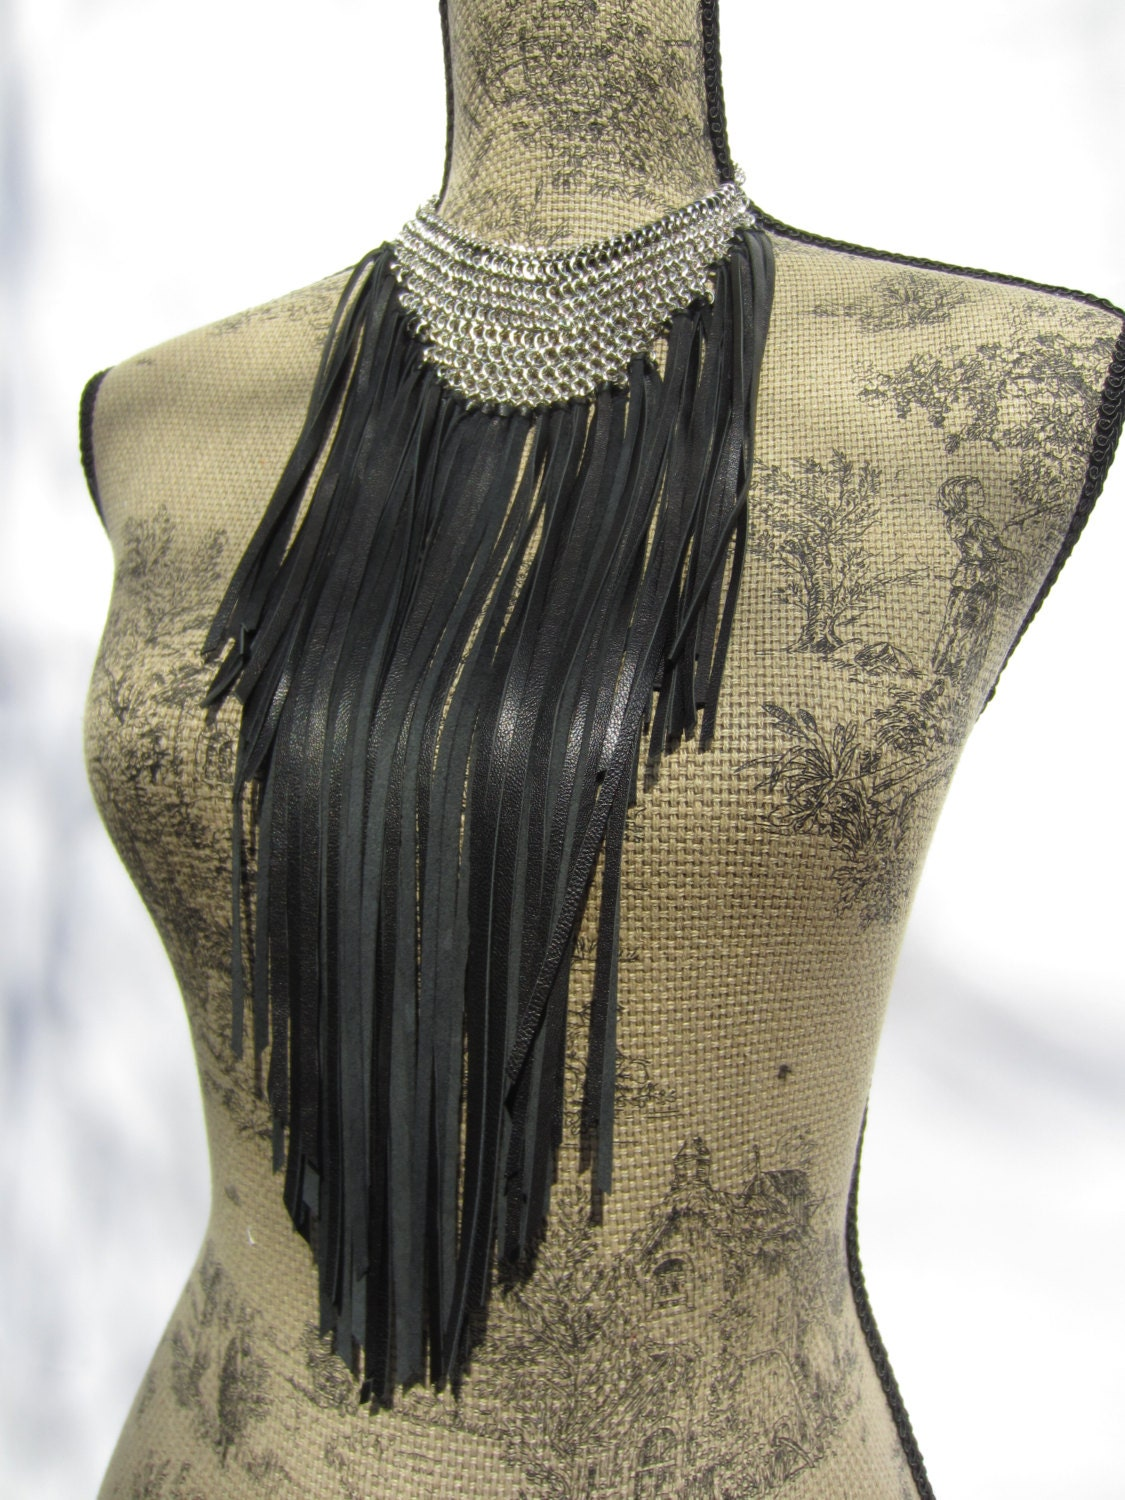 Chainmaille Leather Fringe Bib Necklace Choker Neck Cuff